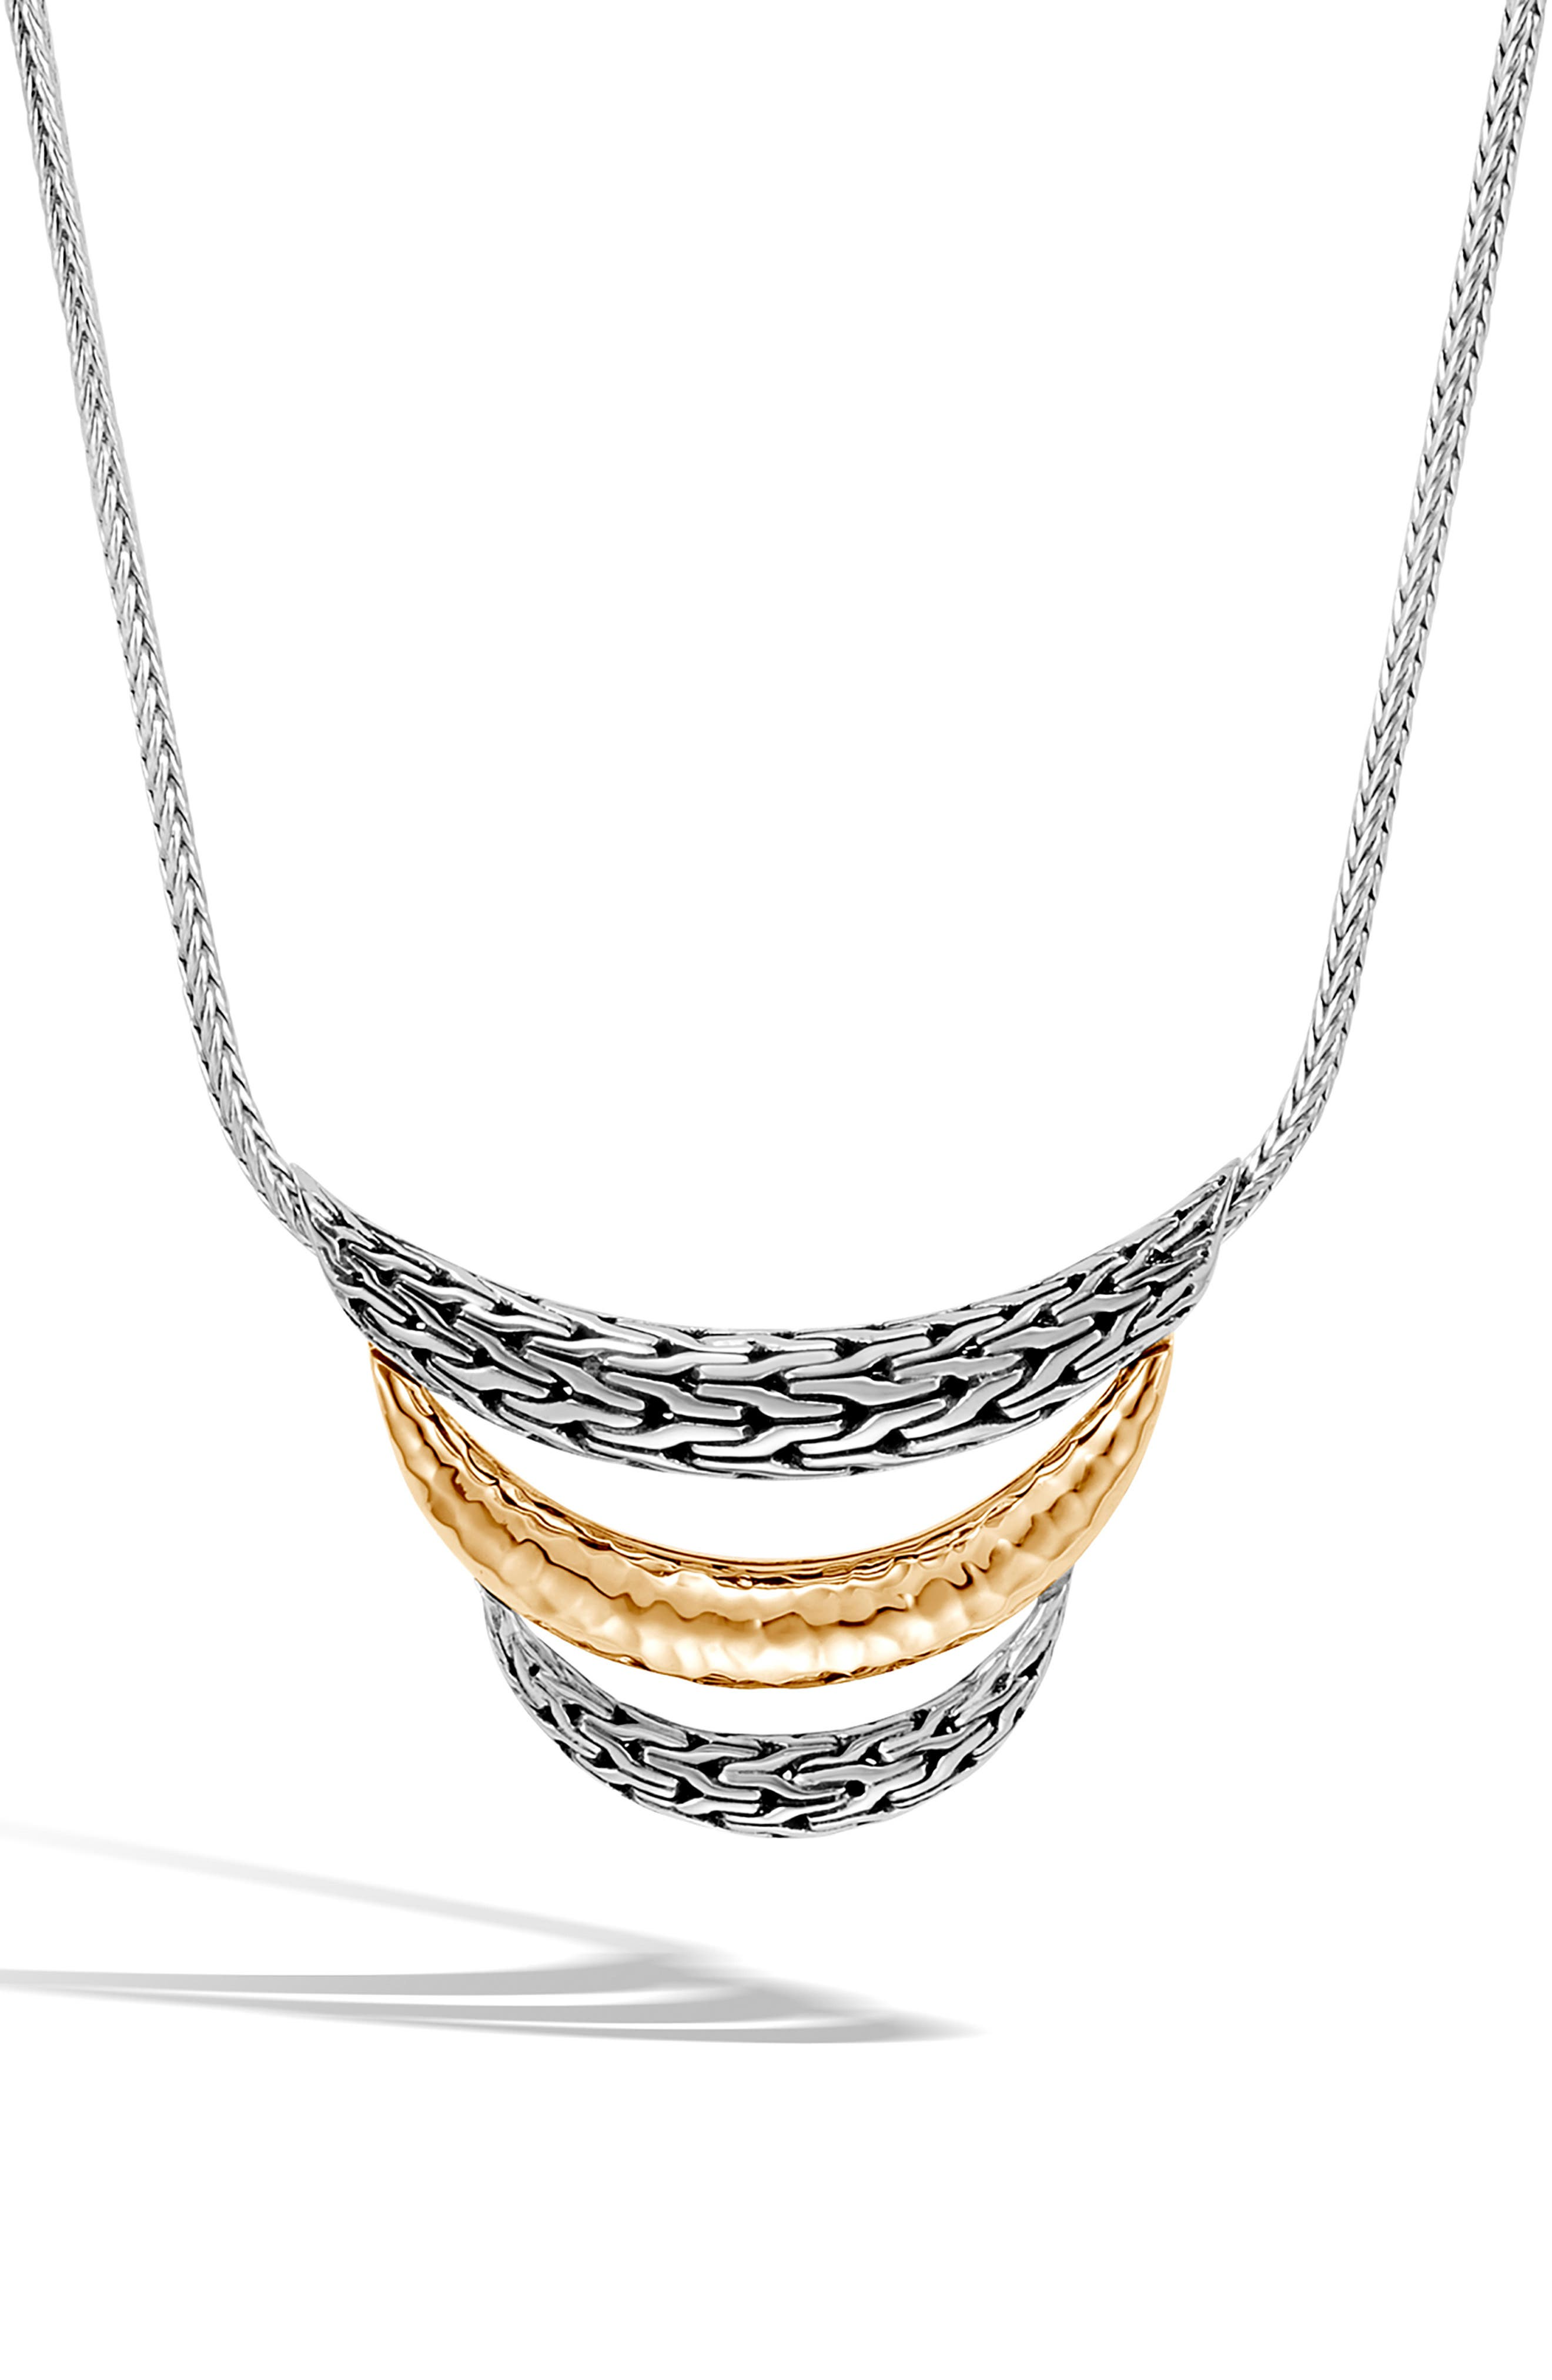 Classic Chain Sterling Silver & 18K Gold Bib Necklace,                             Main thumbnail 1, color,                             SILVER/ GOLD